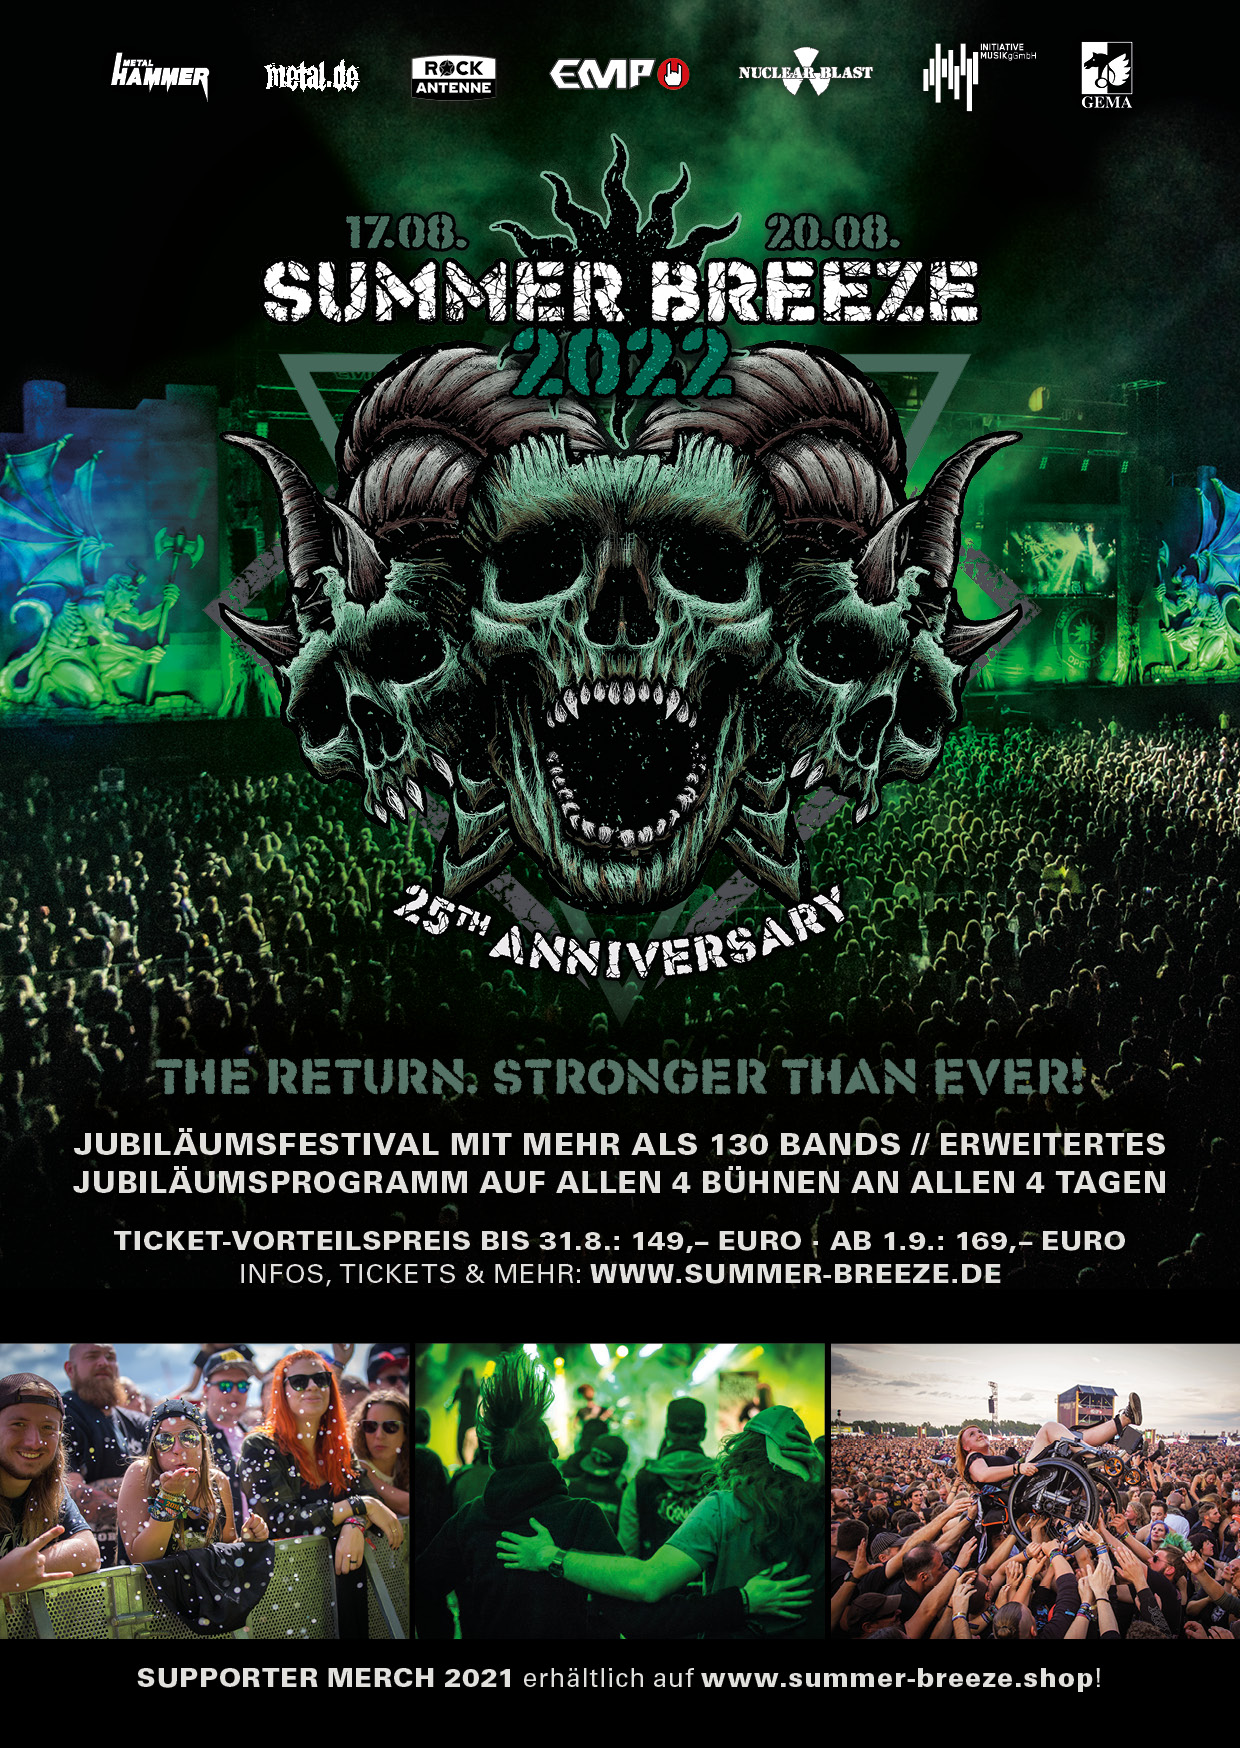 Summer Breeze 2015 2015 poster